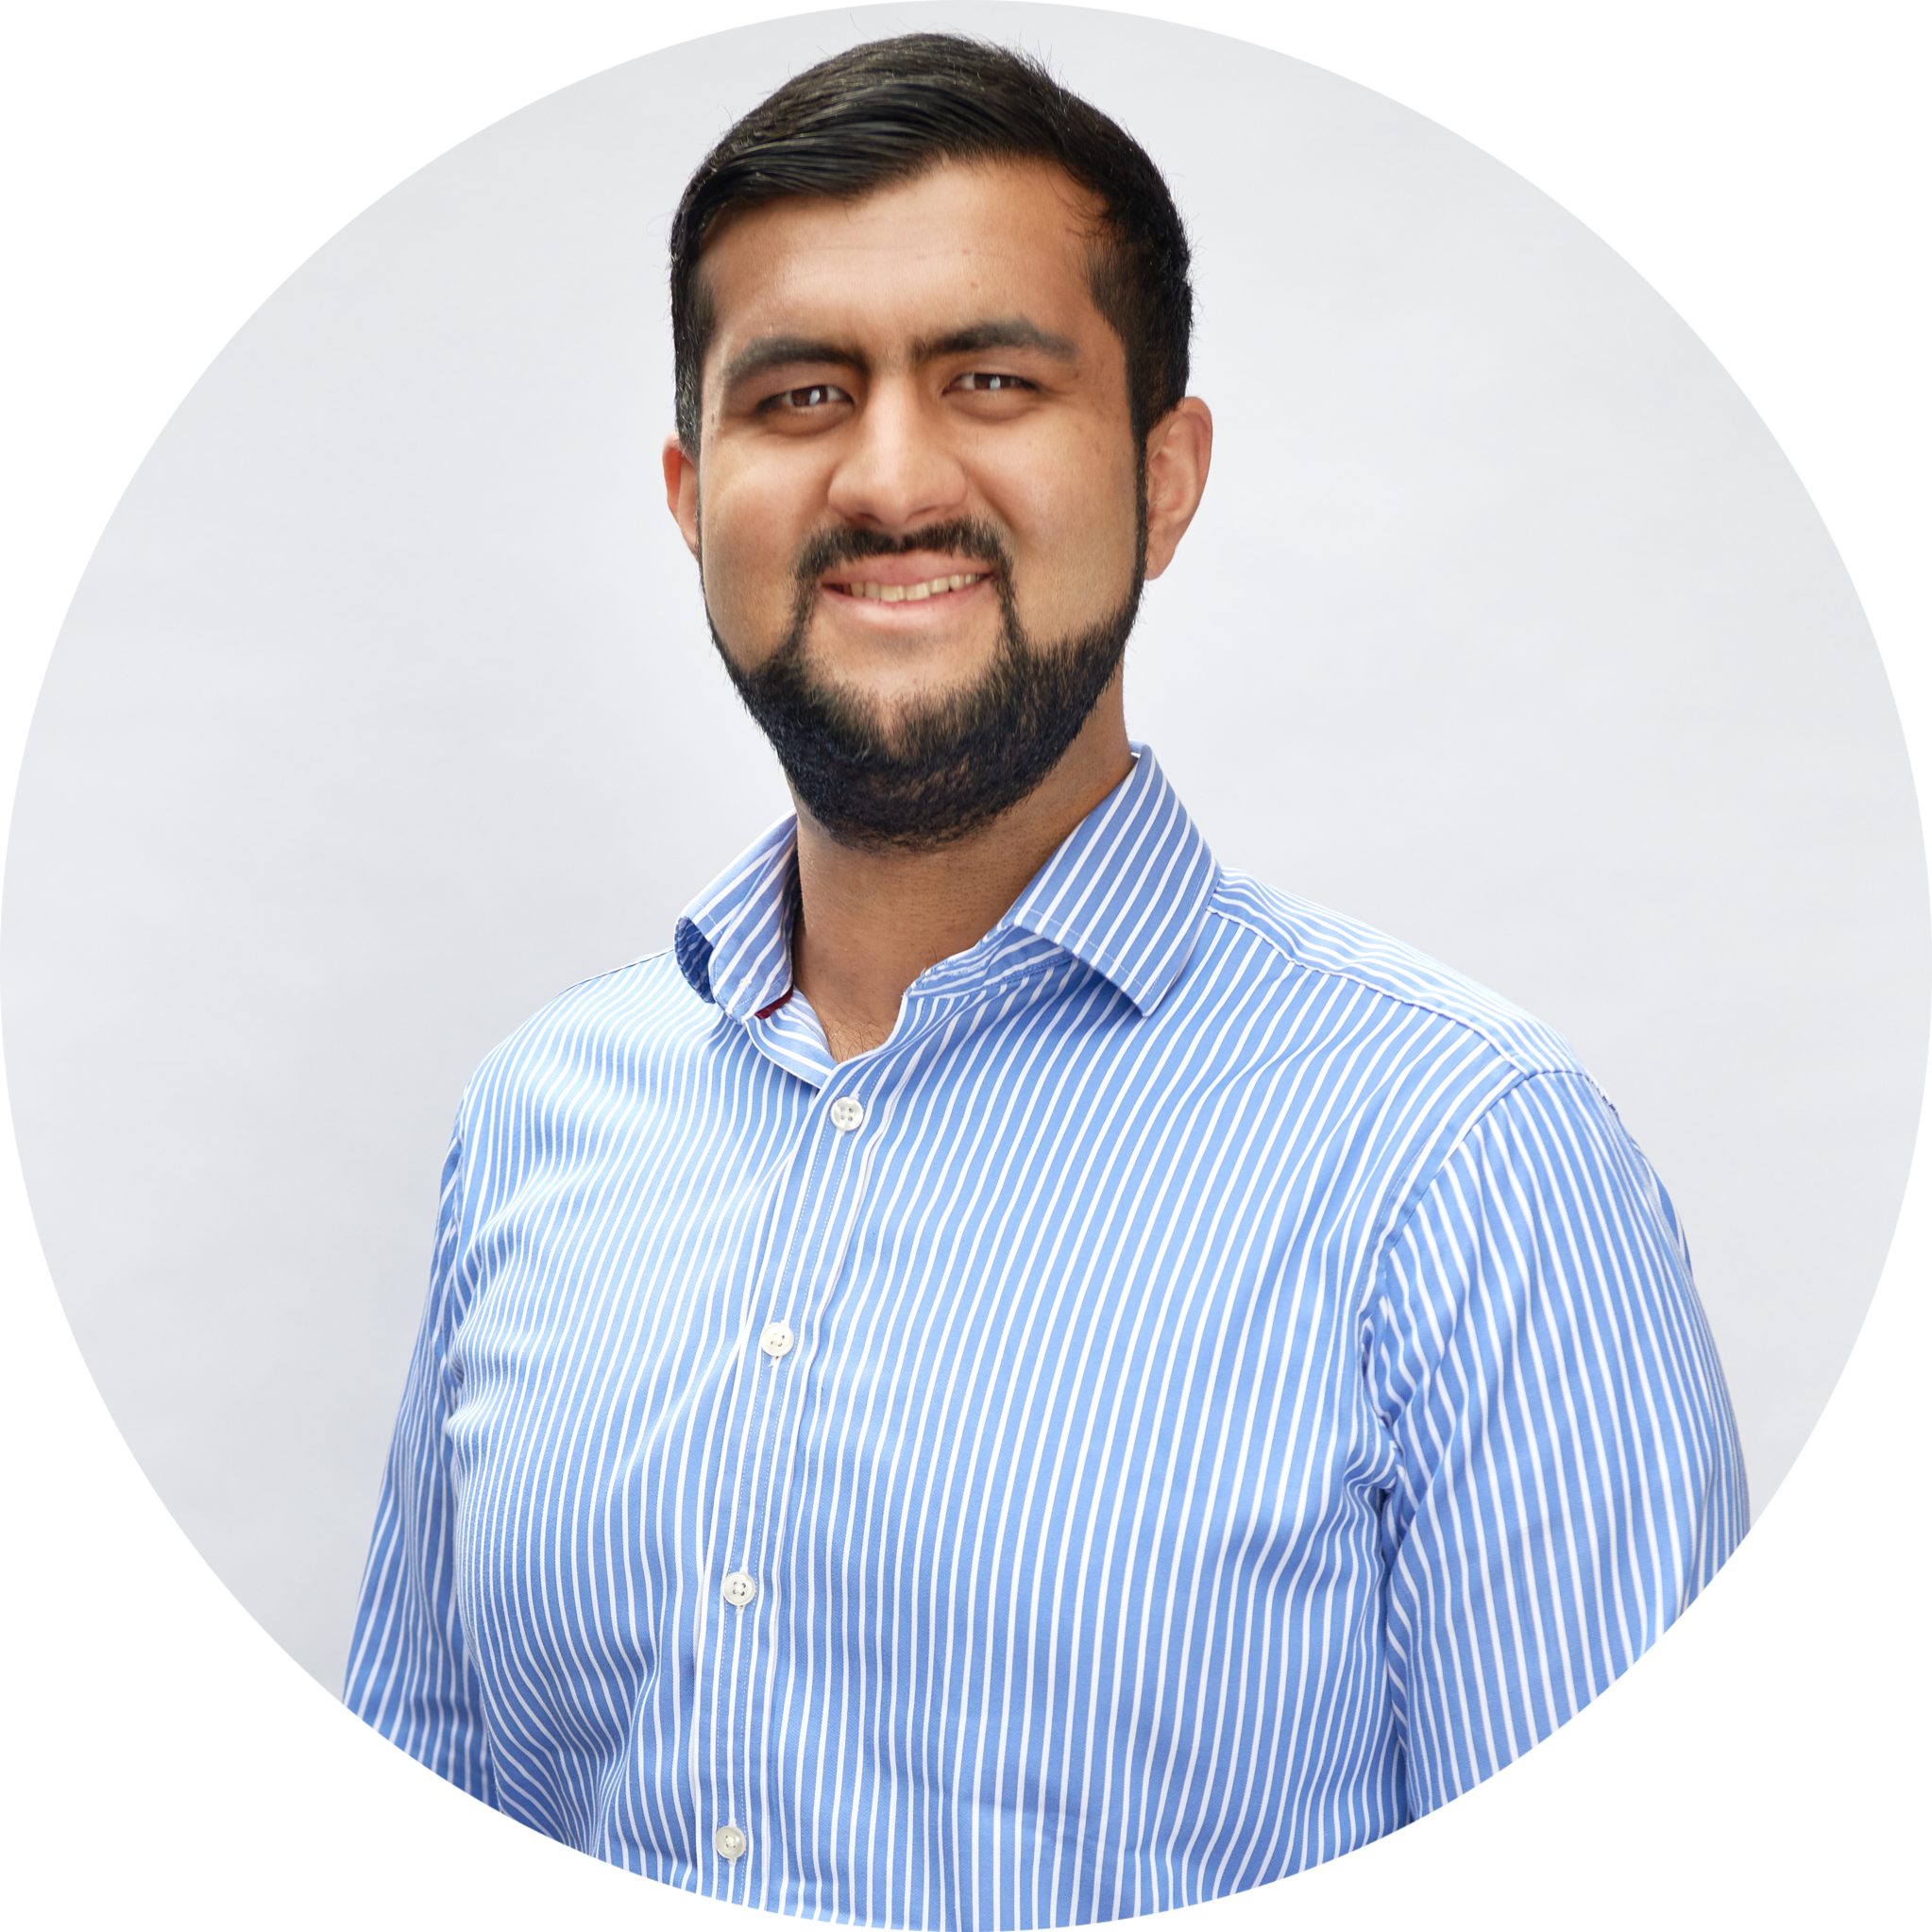 Zeshan T. - Deals Advisory, PwCZeshan is an expert in Consulting and M&A type roles with experience in securing summer internships, Graduate positions and internal moves in the company. He has been mentoring and helping students for the last few years - specialising in communication, structure, technical exams to ensure you have full support in securing the right position for you.